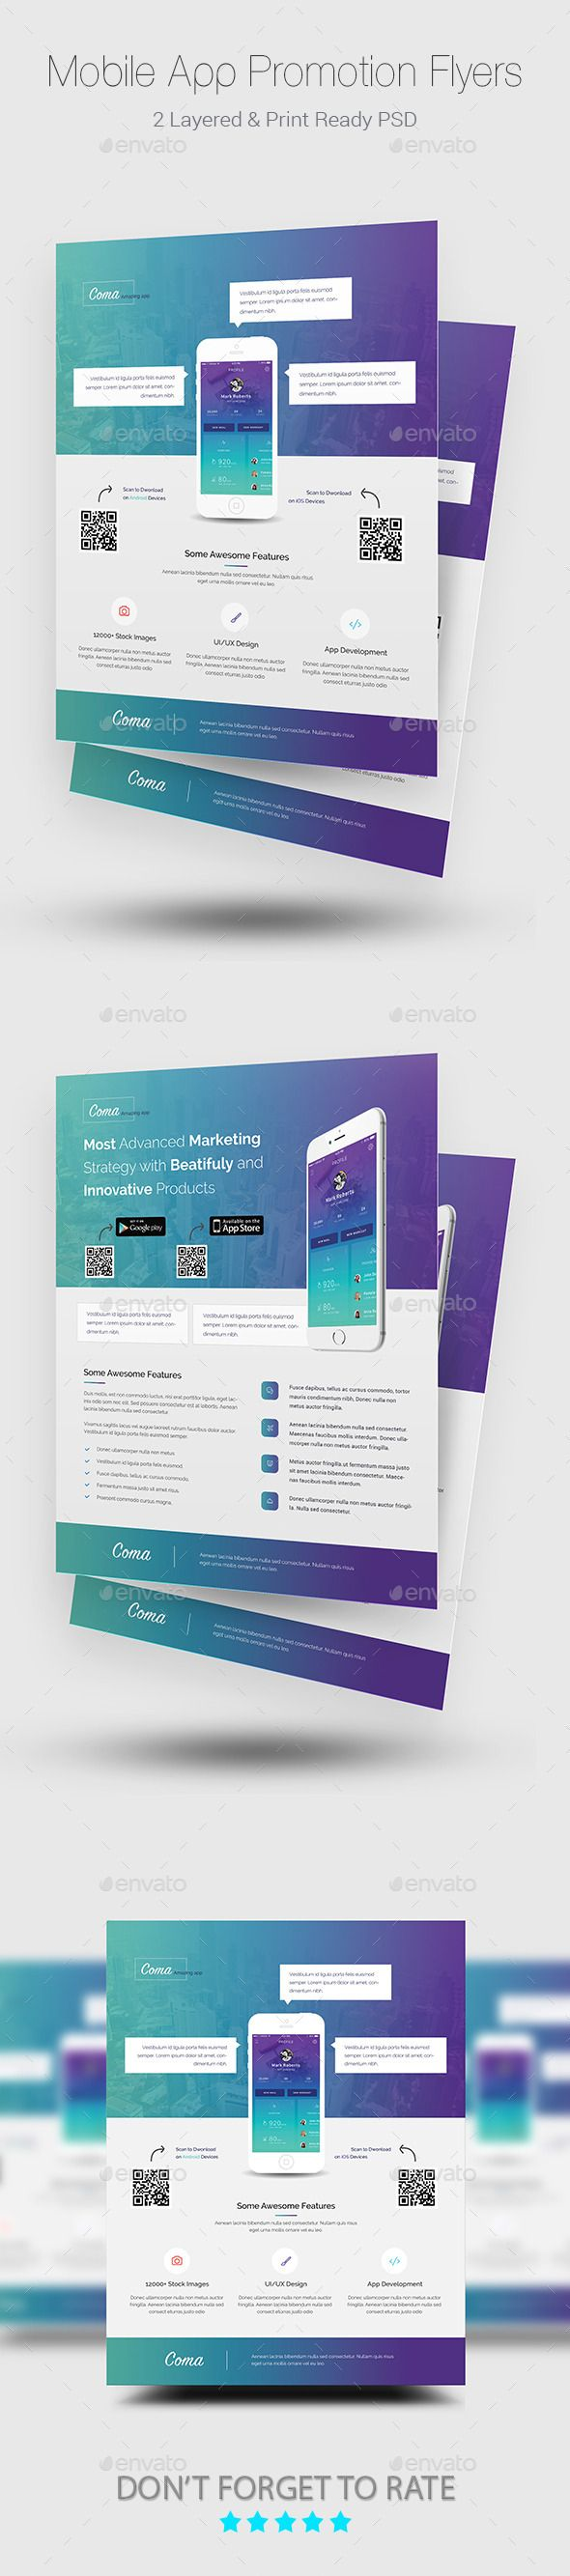 Mobile App Promotion Flyer Templates  — PSD Template #app flyer • Click here to…